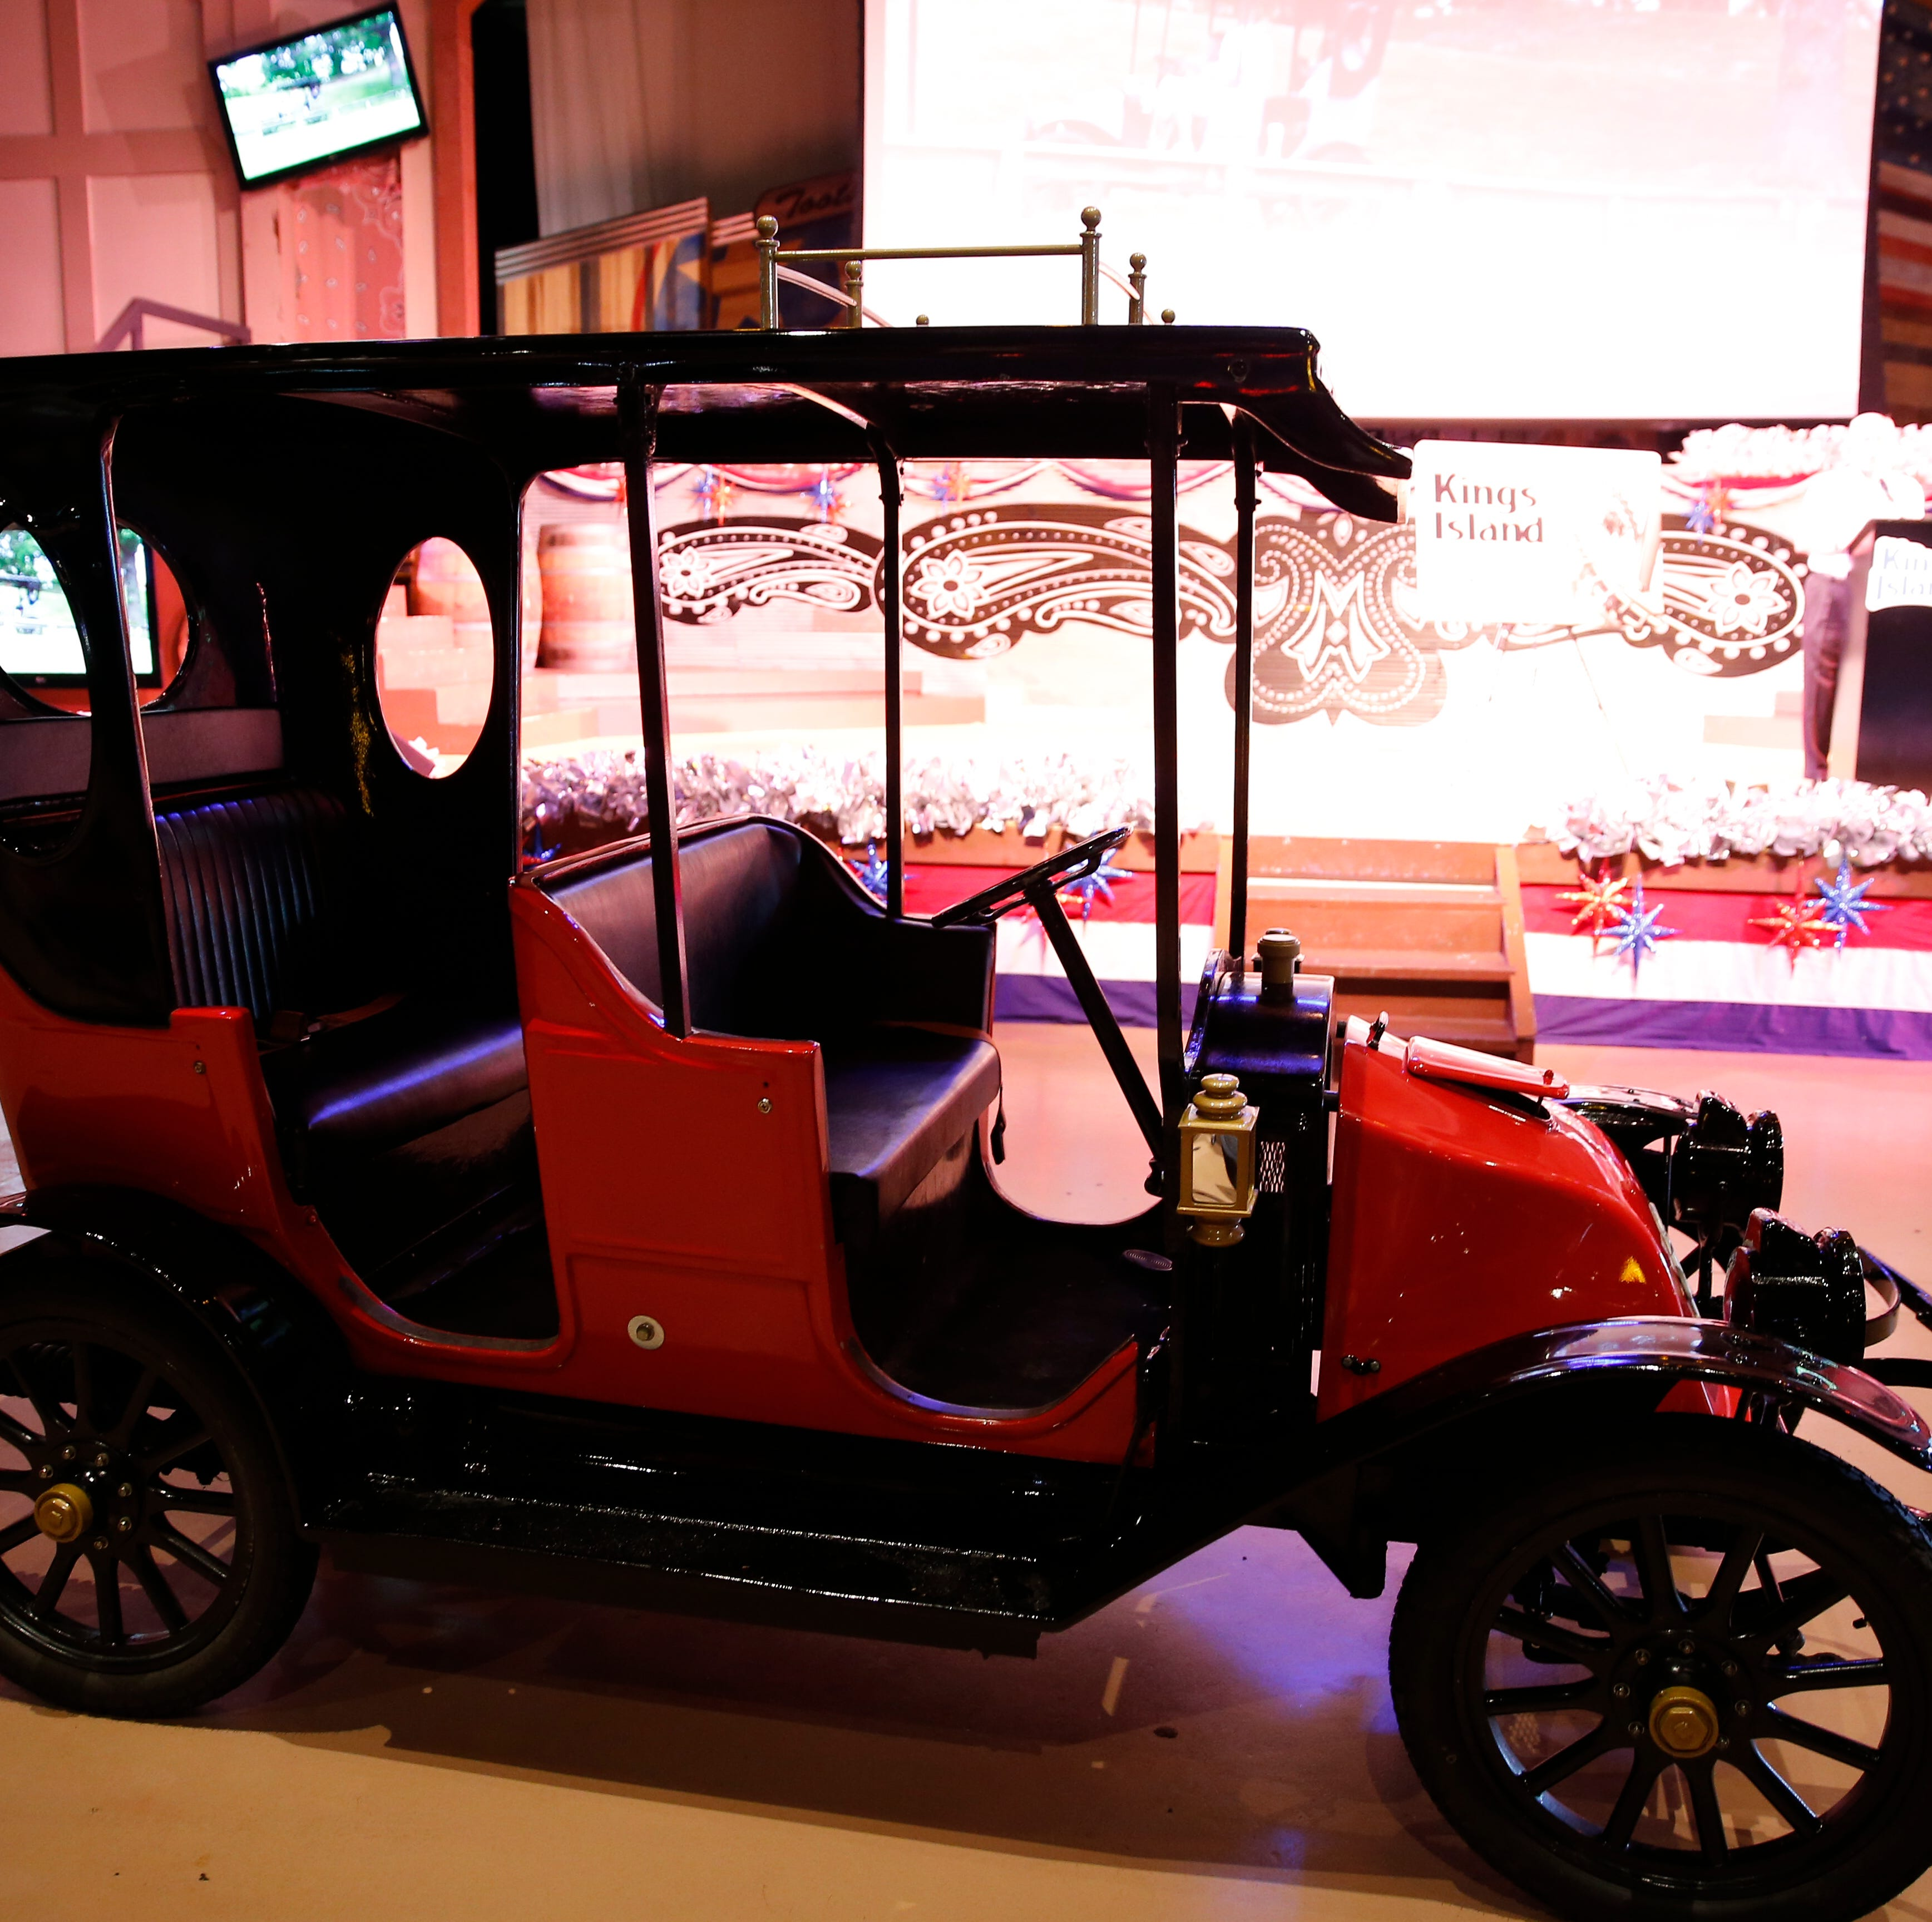 Kings Island is bringing back the Antique Cars ride